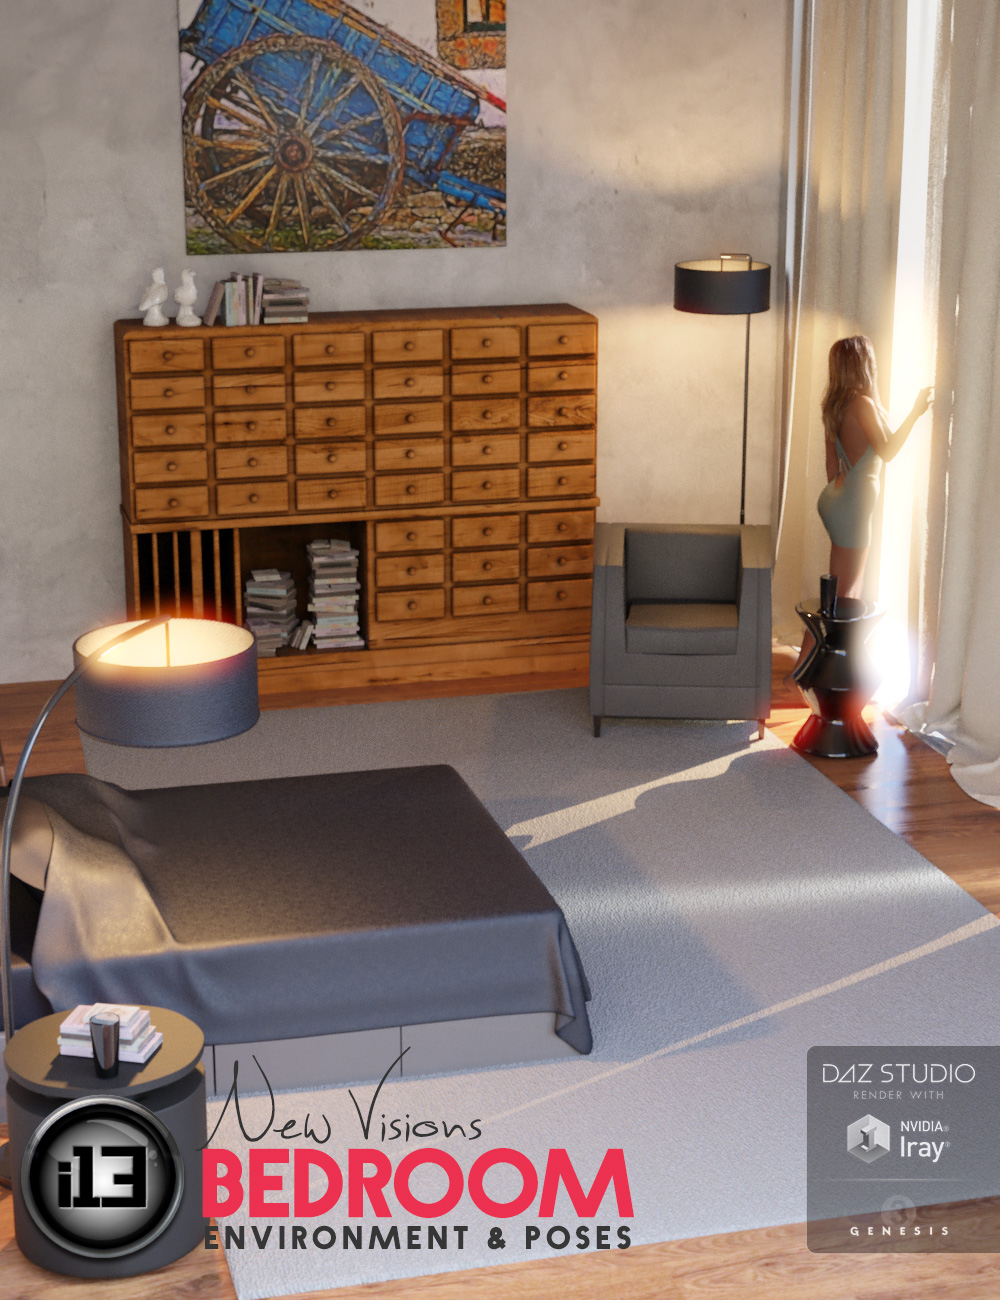 i13 New Visions Bedroom by: ironman13, 3D Models by Daz 3D